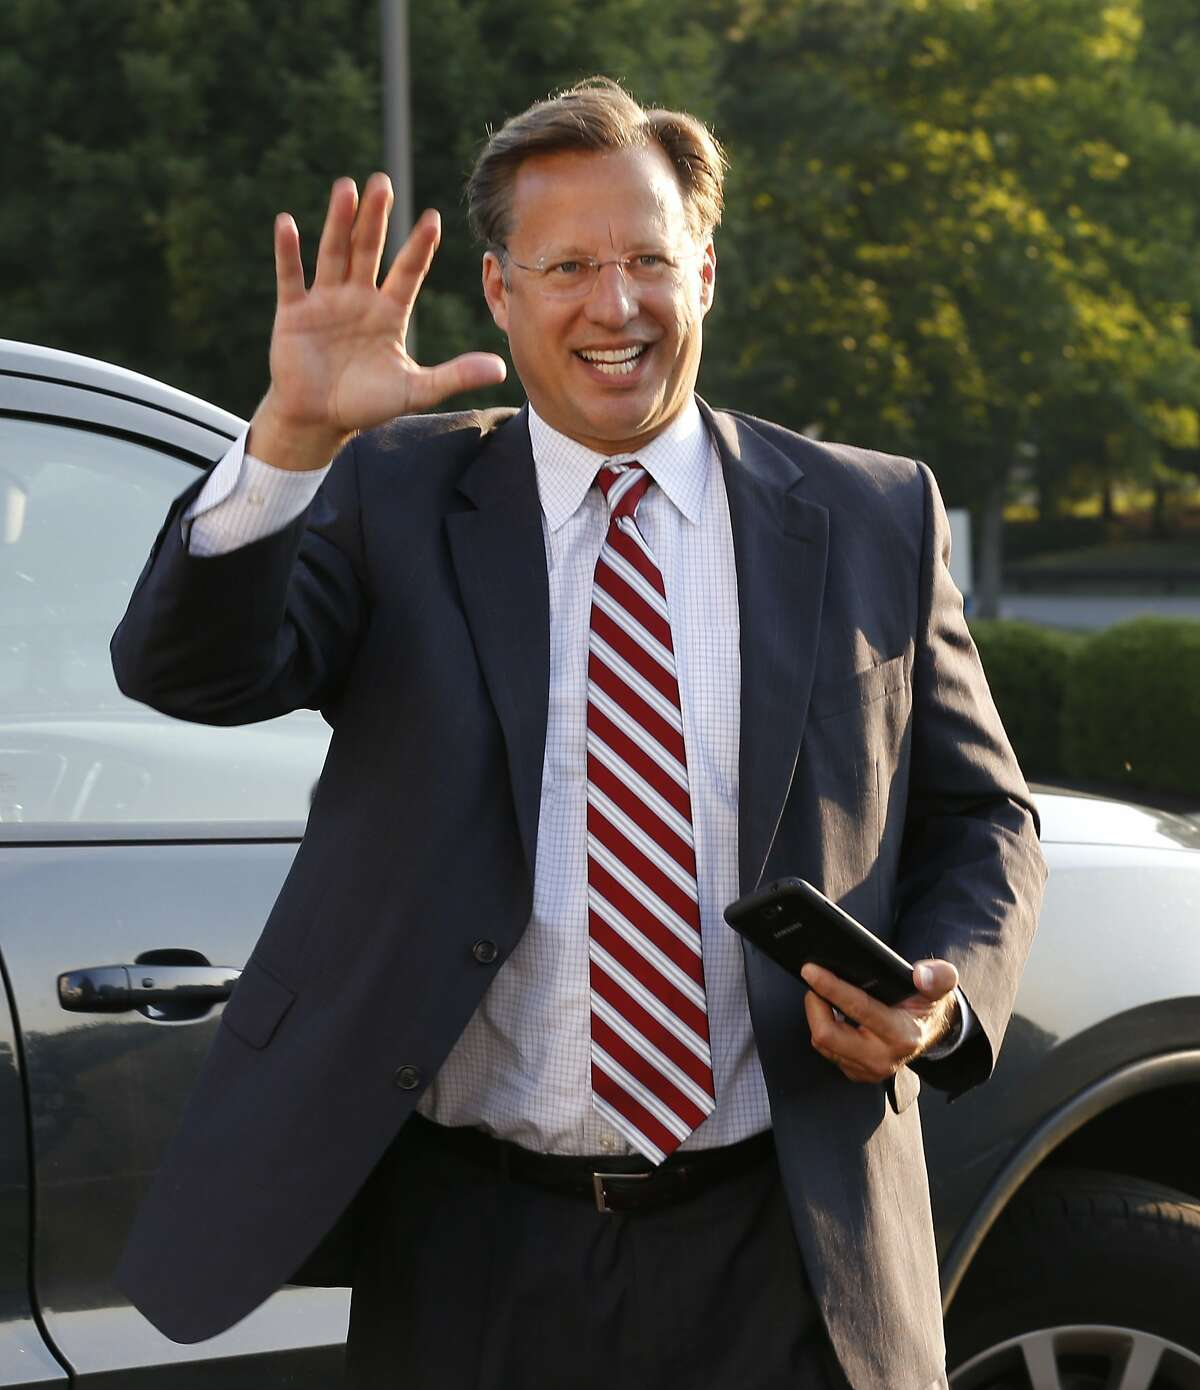 Republican 7th District congressional candidate Dave Brat waves as he arrives for a Rotary Club breakfast in Richmond, Va., Tuesday, June 17, 2014. Brat defeated House Majority Leader Eric Cantor in last week's Republican primary. (AP Photo/Steve Helber)